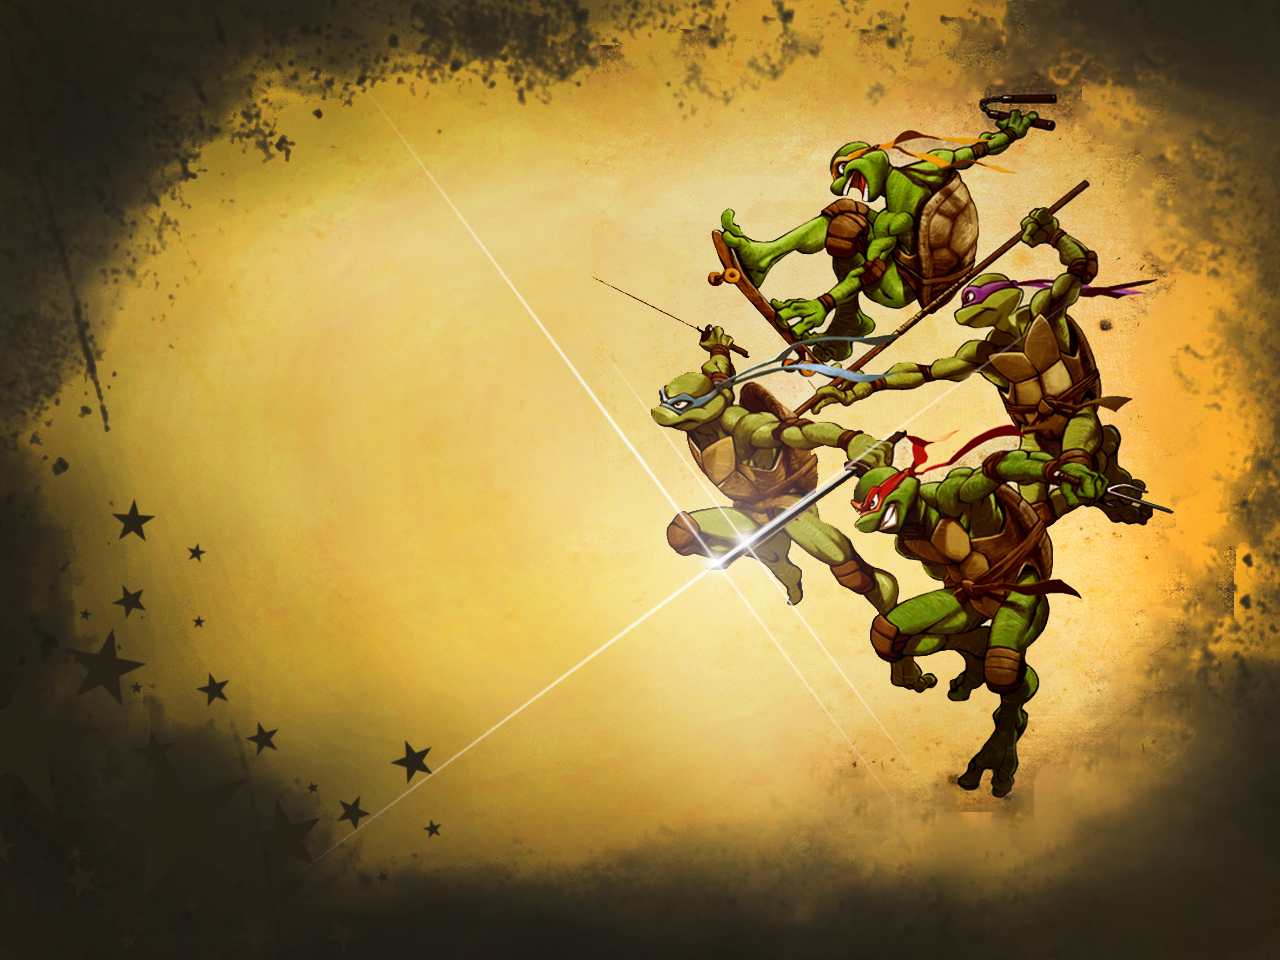 Ninja Turtles images Ninja Turtles HD wallpaper and background